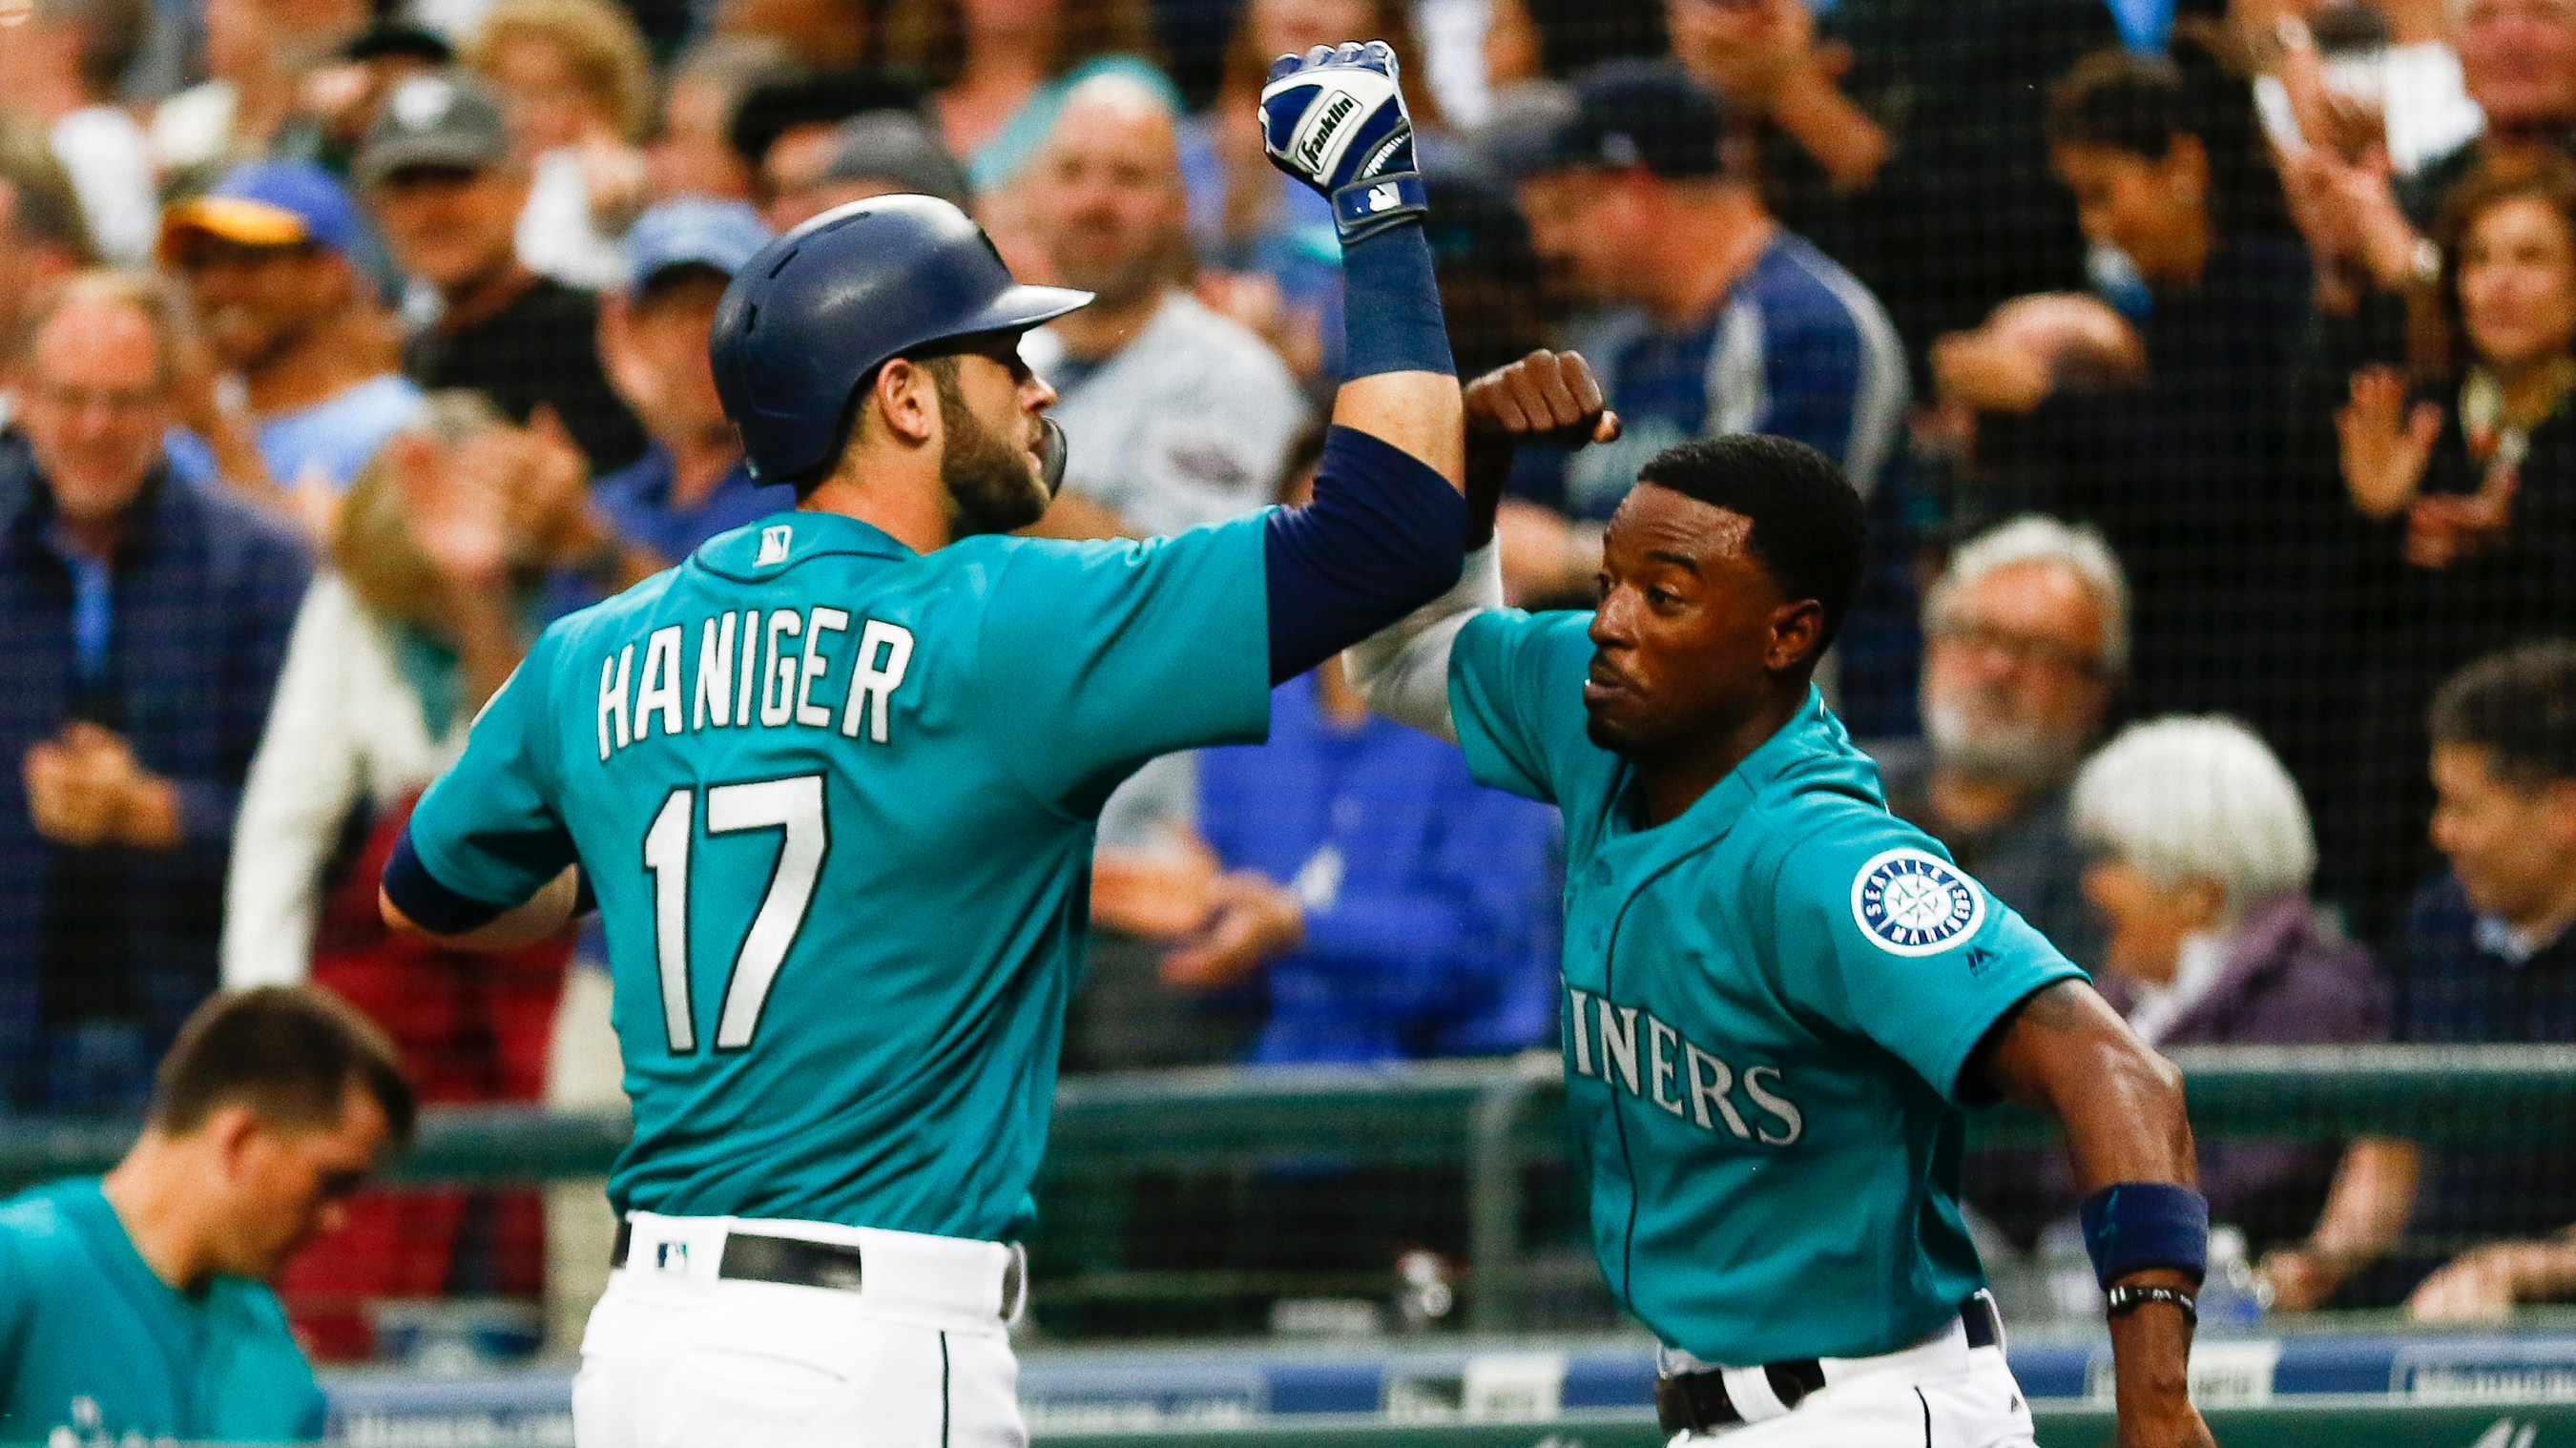 Can The Mariners Finally End Their Playoff Drought?